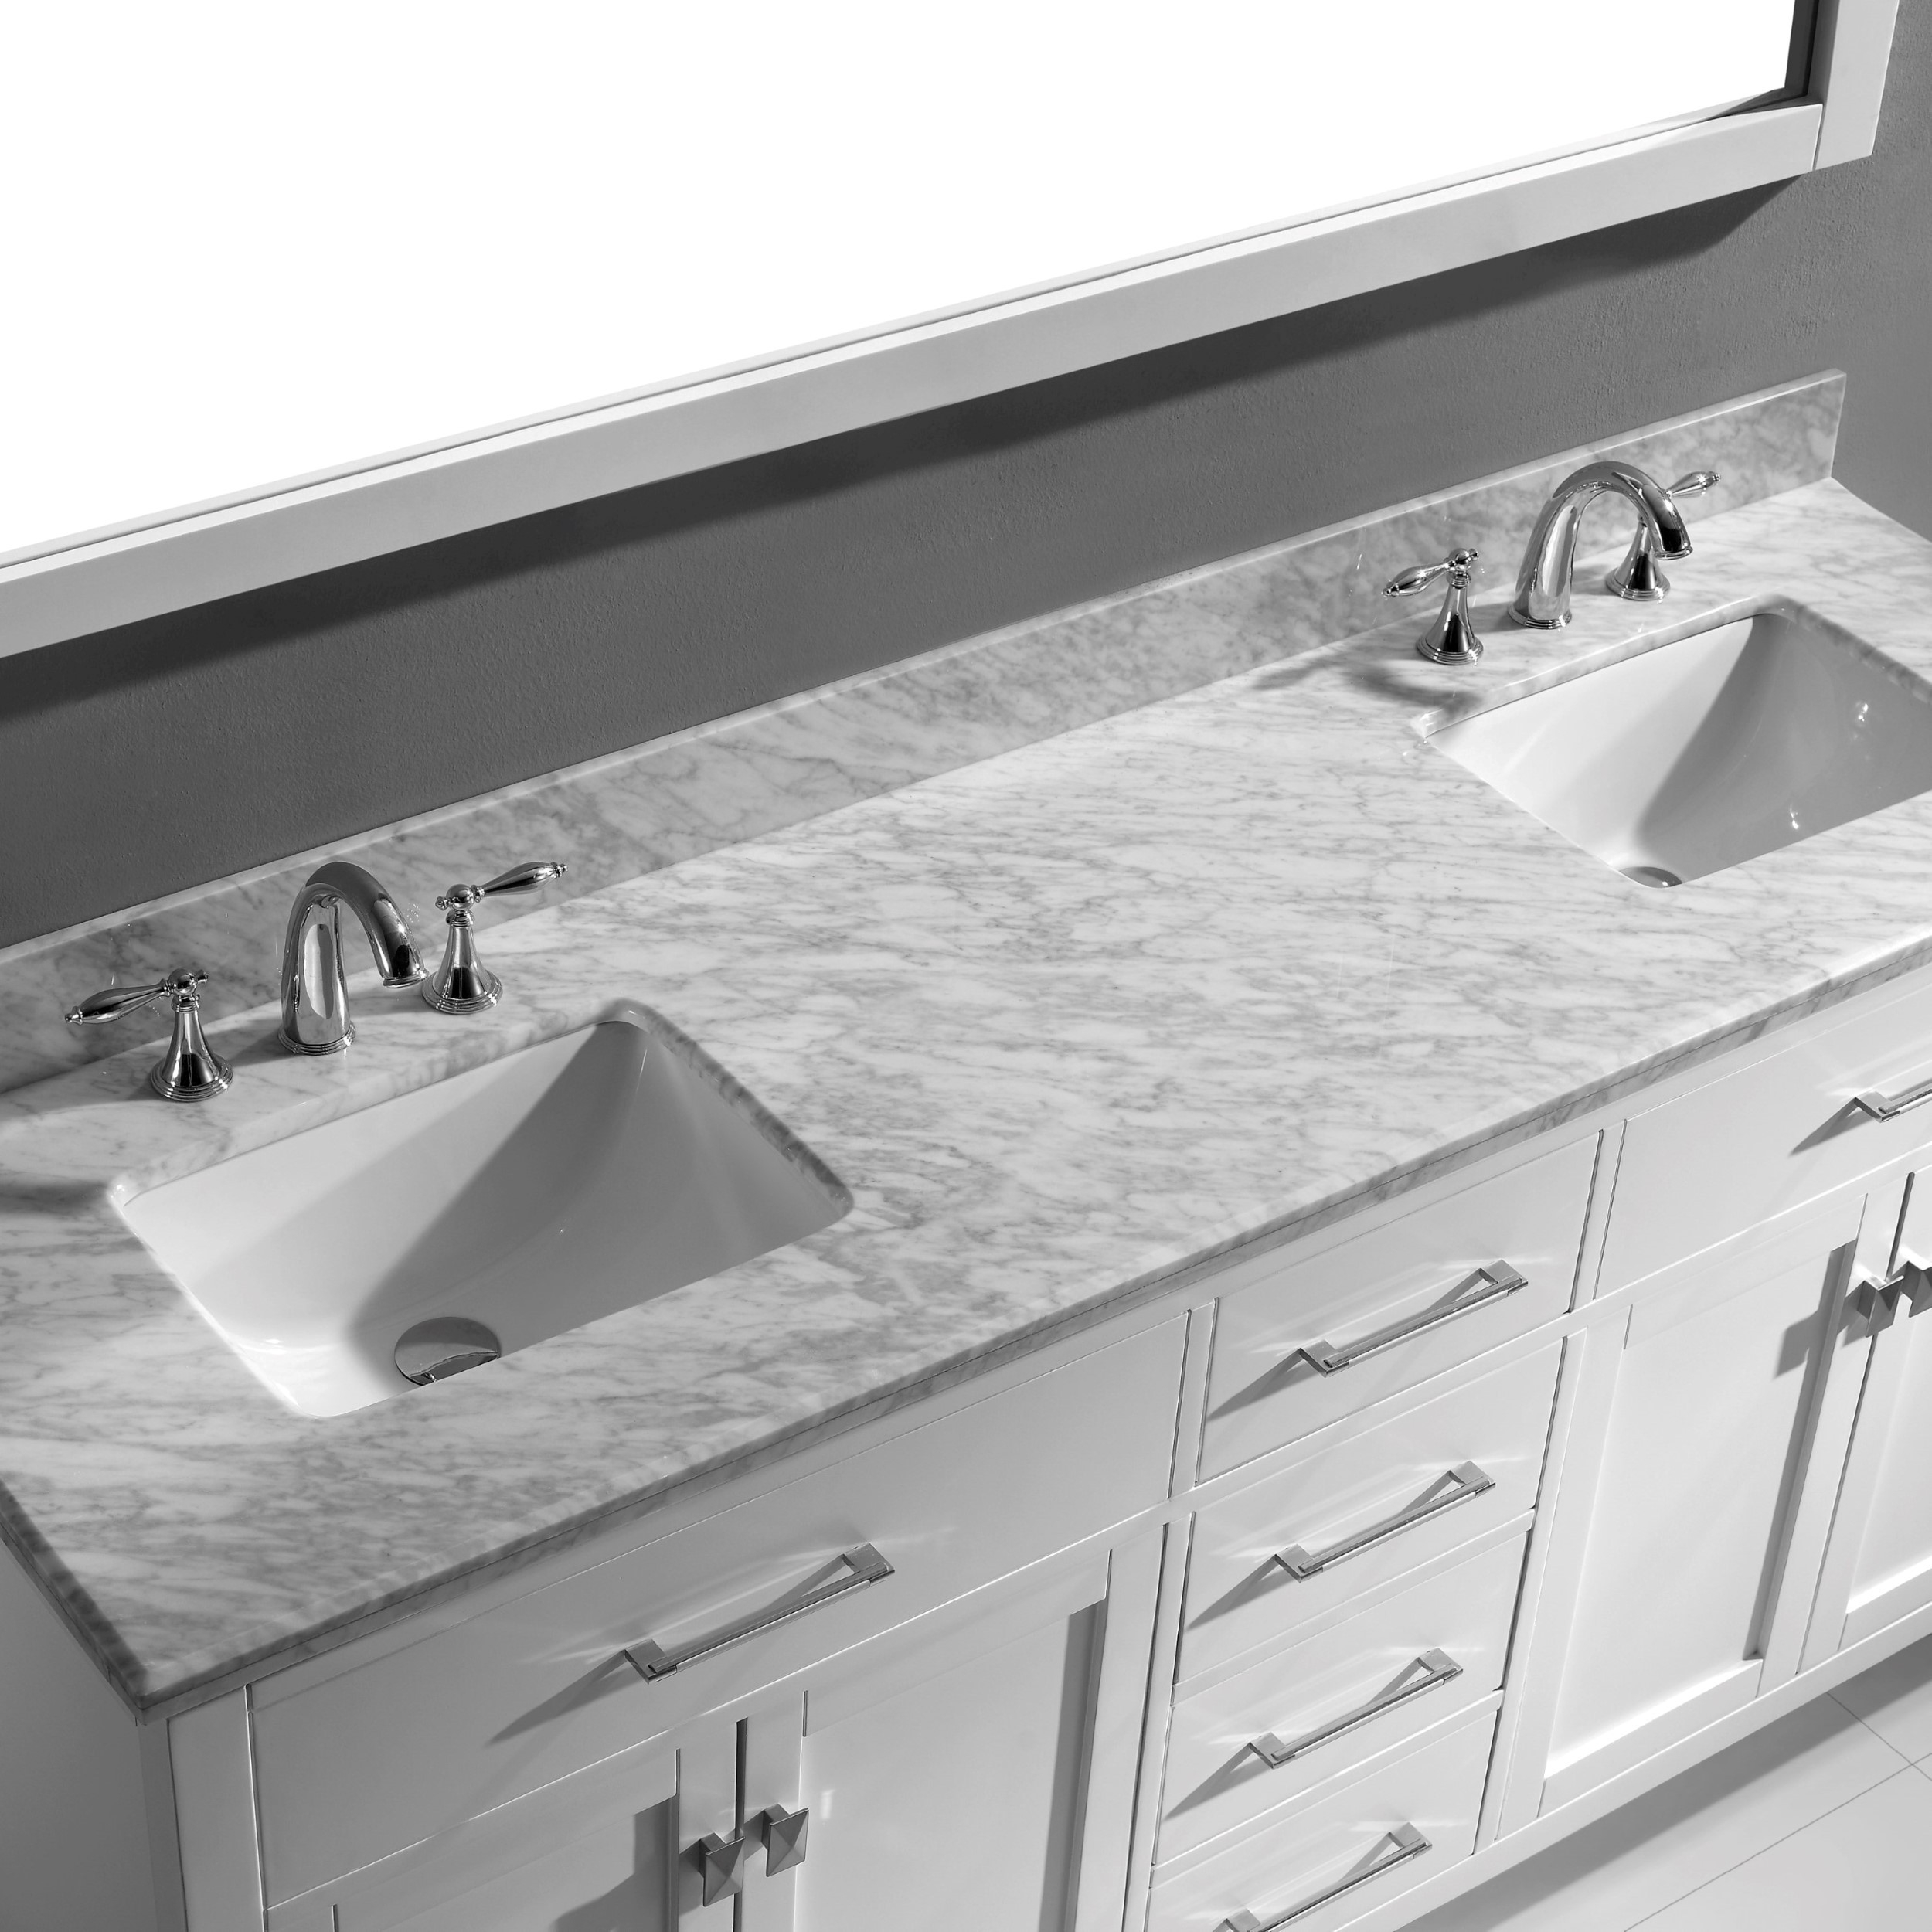 Modular 72 In Bathroom Vanity Double Sink - 4K Wallpapers Design intended for Unique Bathroom Vanities Double Sink 72